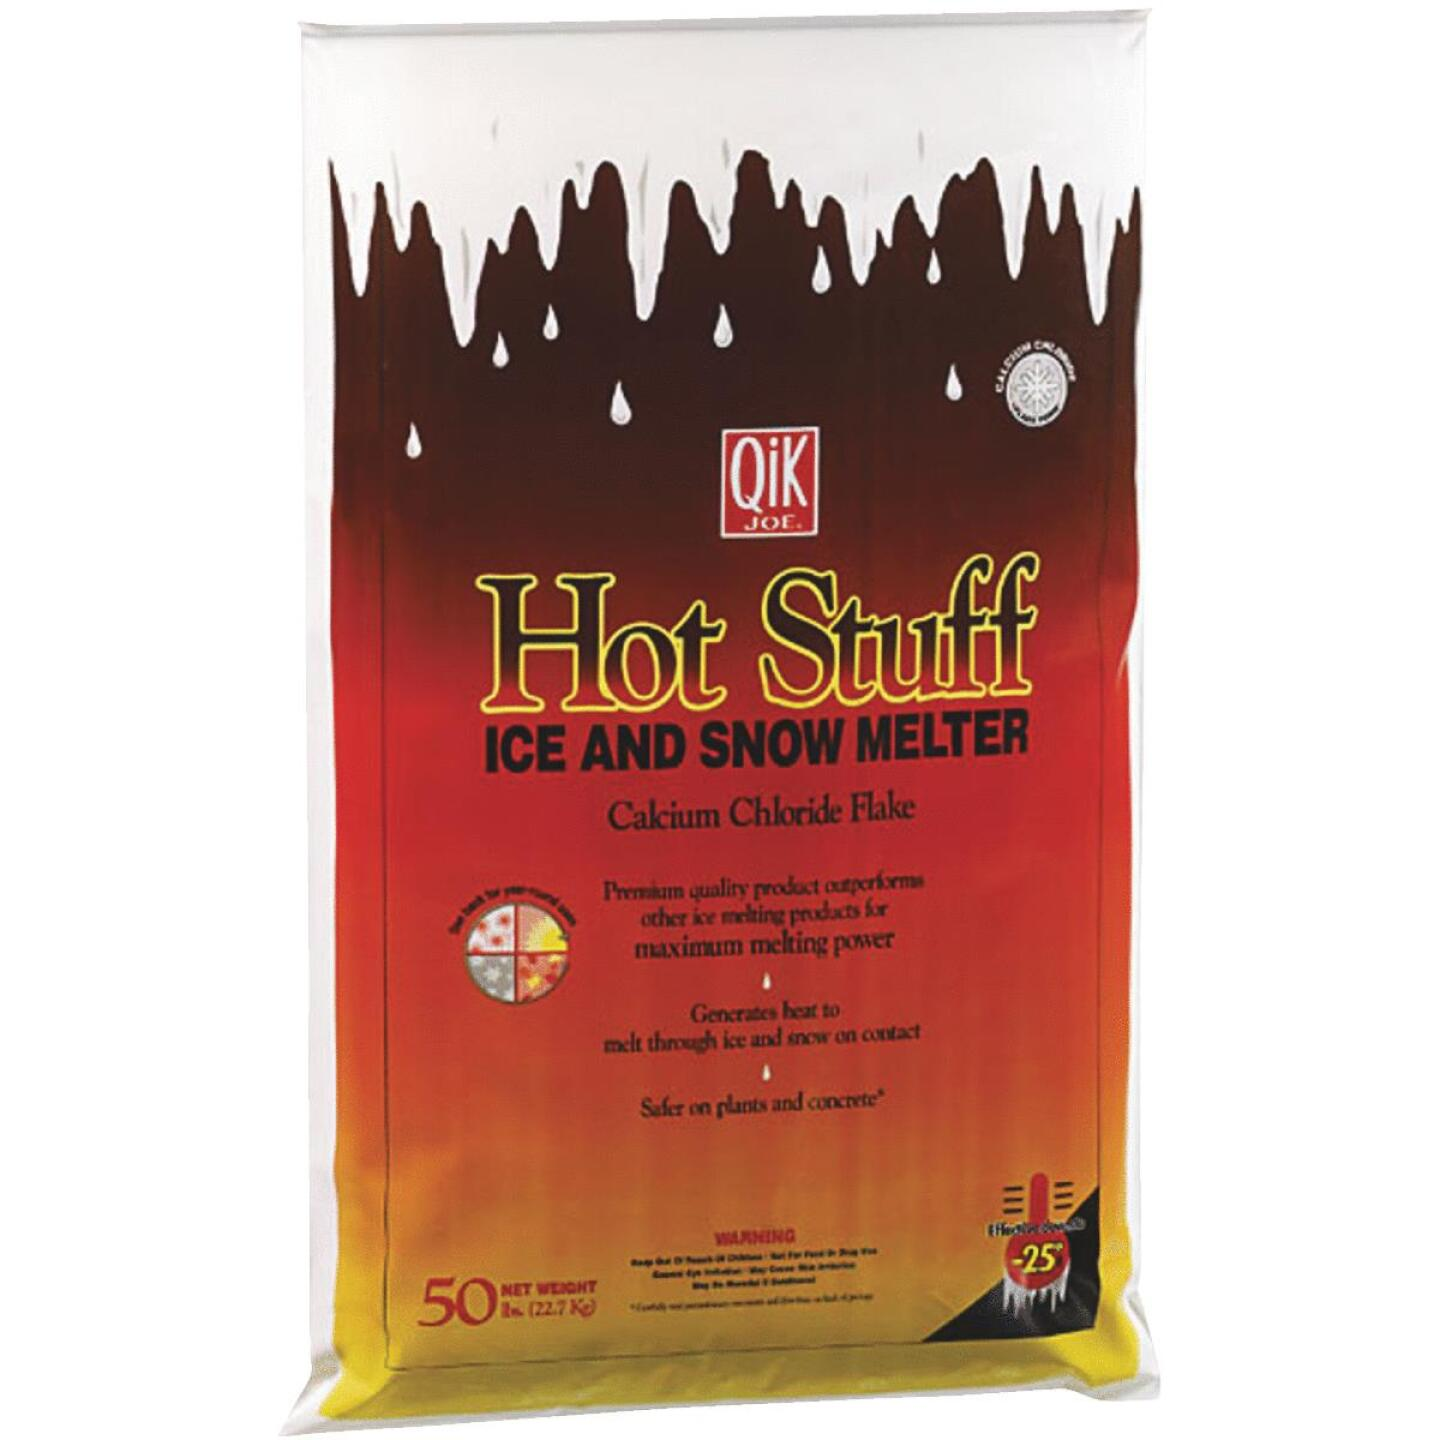 Qik Joe Hot Stuff 50 Lb. Ice Melt Flakes Image 1